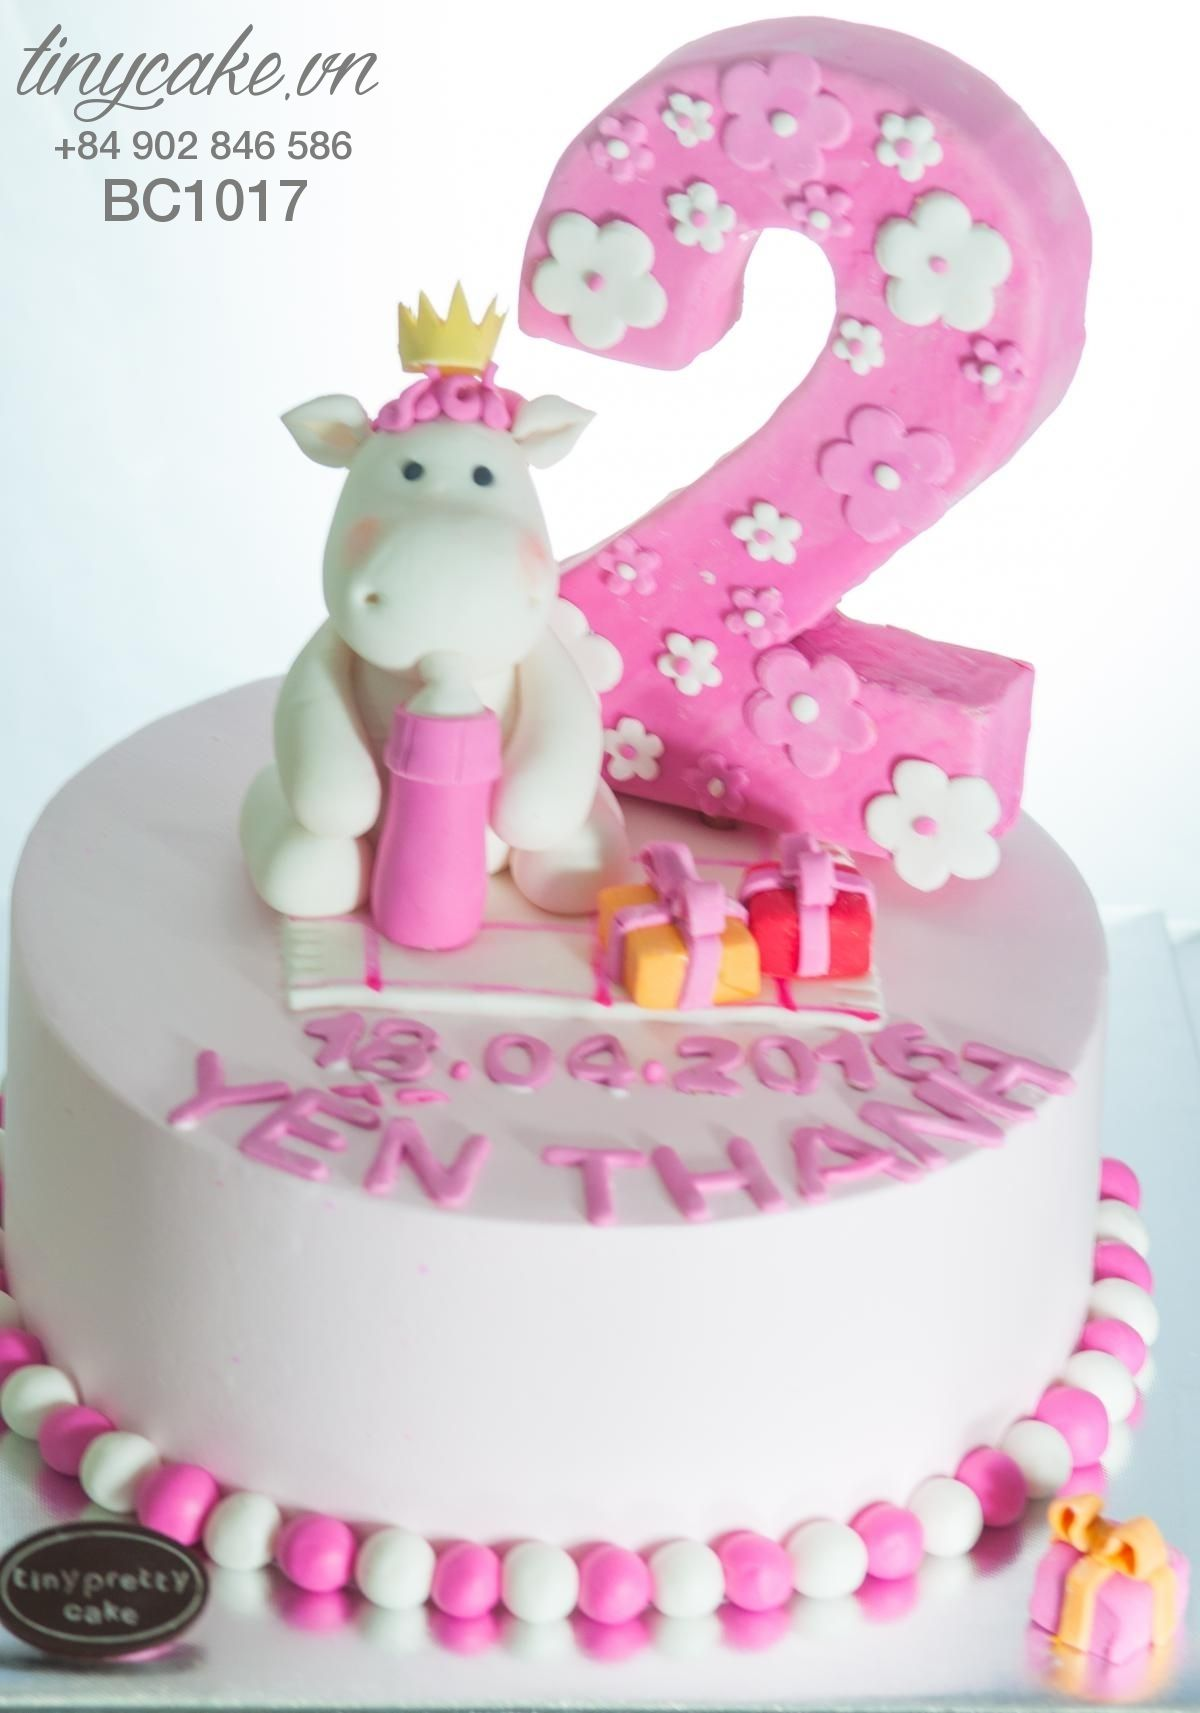 Birthday cake with little horse for baby girl 2 years old